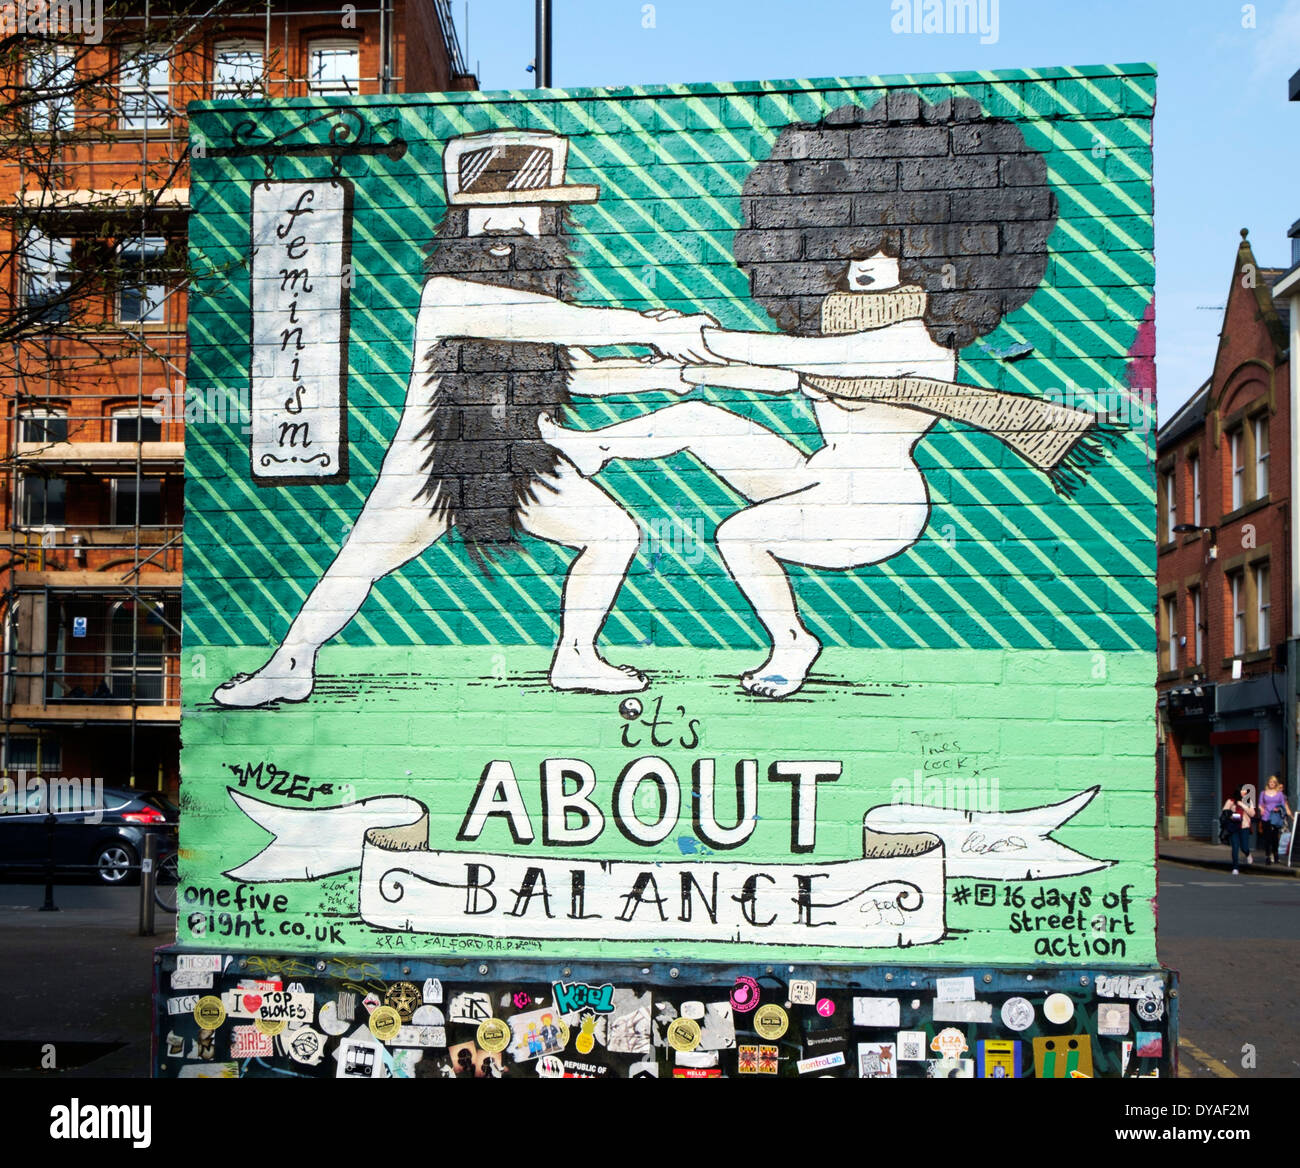 Mural about feminist action in the Northern Quarter, Manchester, England, UK - Stock Image